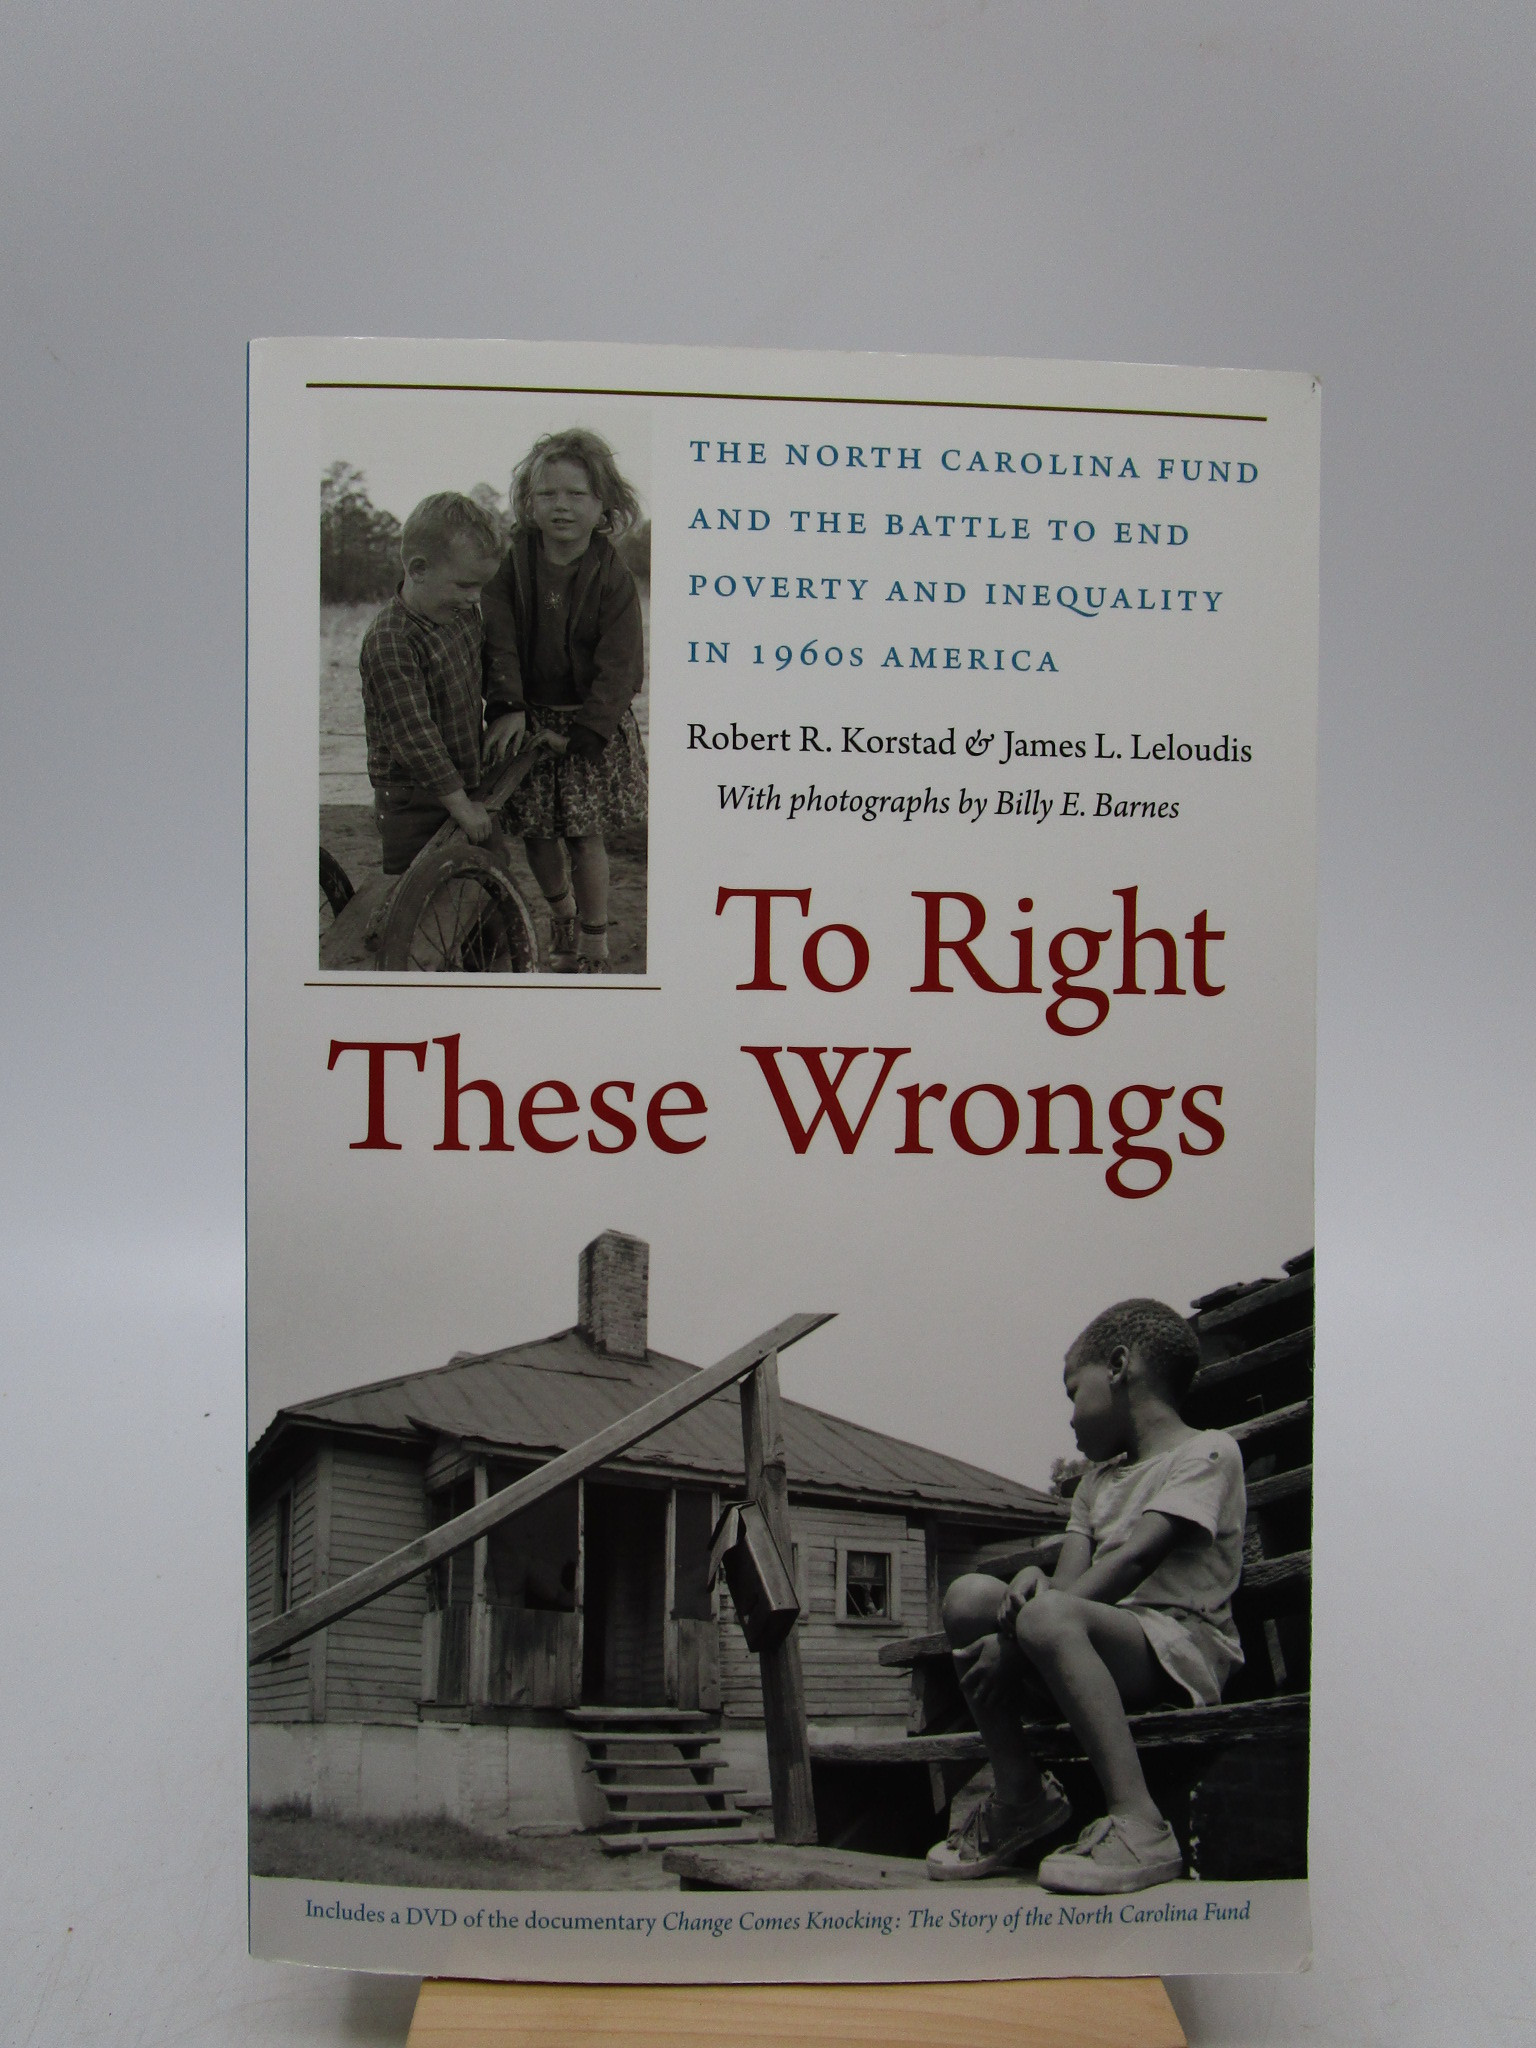 Image for To Right These Wrongs: The North Carolina Fund and the Battle to End Poverty and Inequality in 1960s America (Signed)